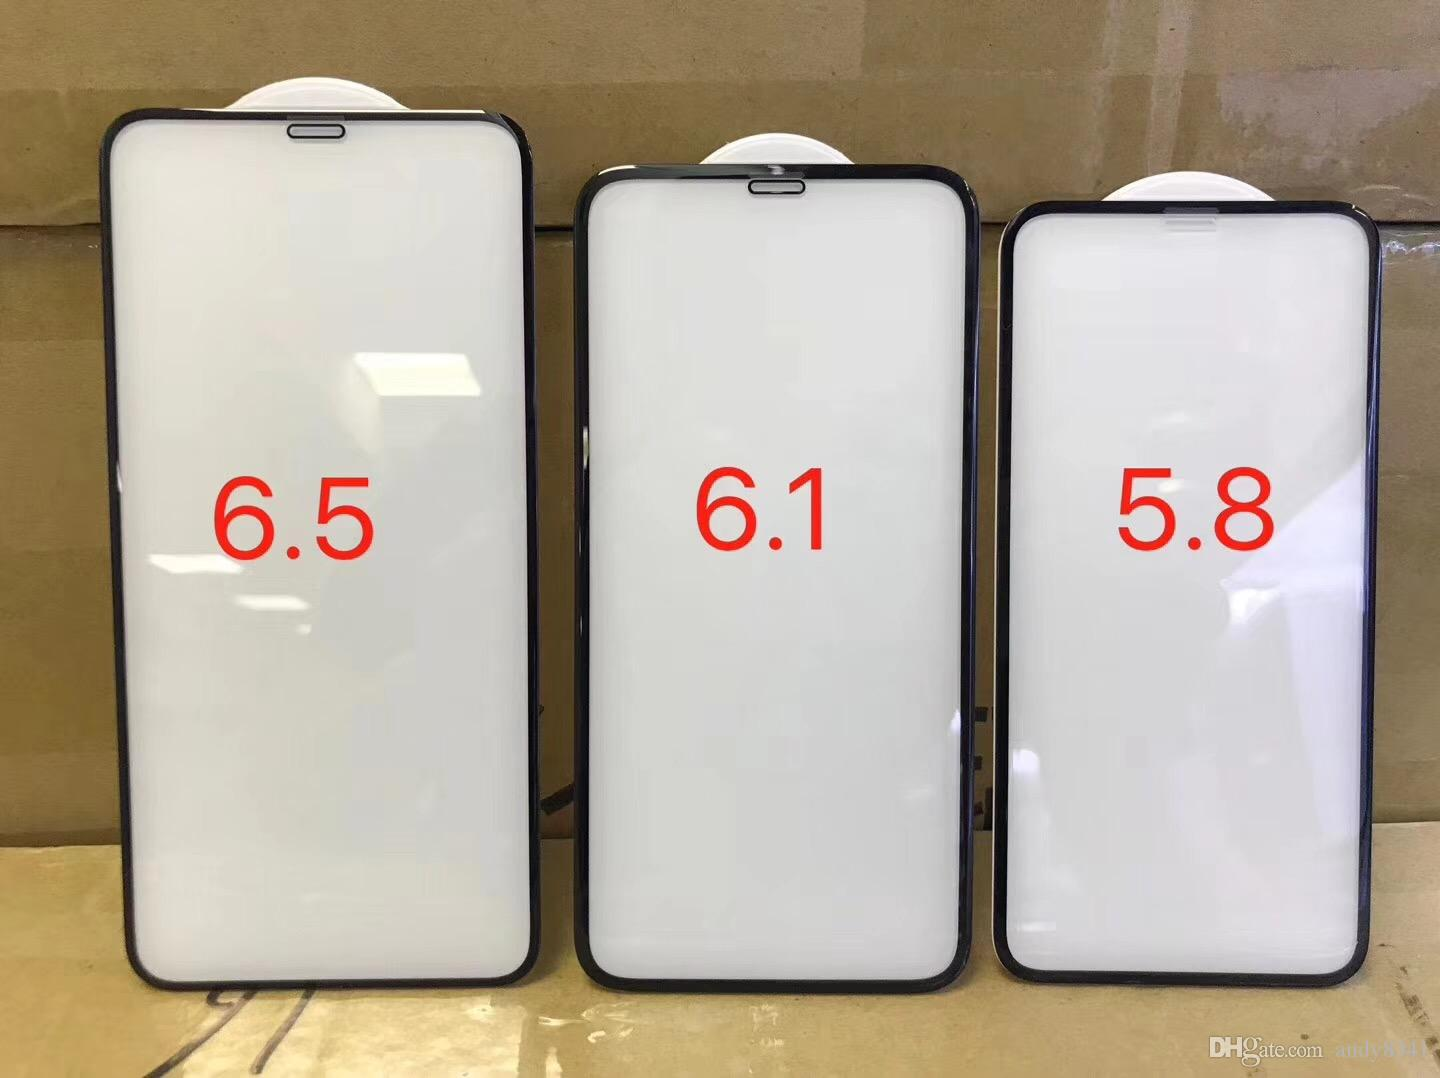 5D Glass Film For IPhone XS XR XS Max Size Includes 5 8 6 1